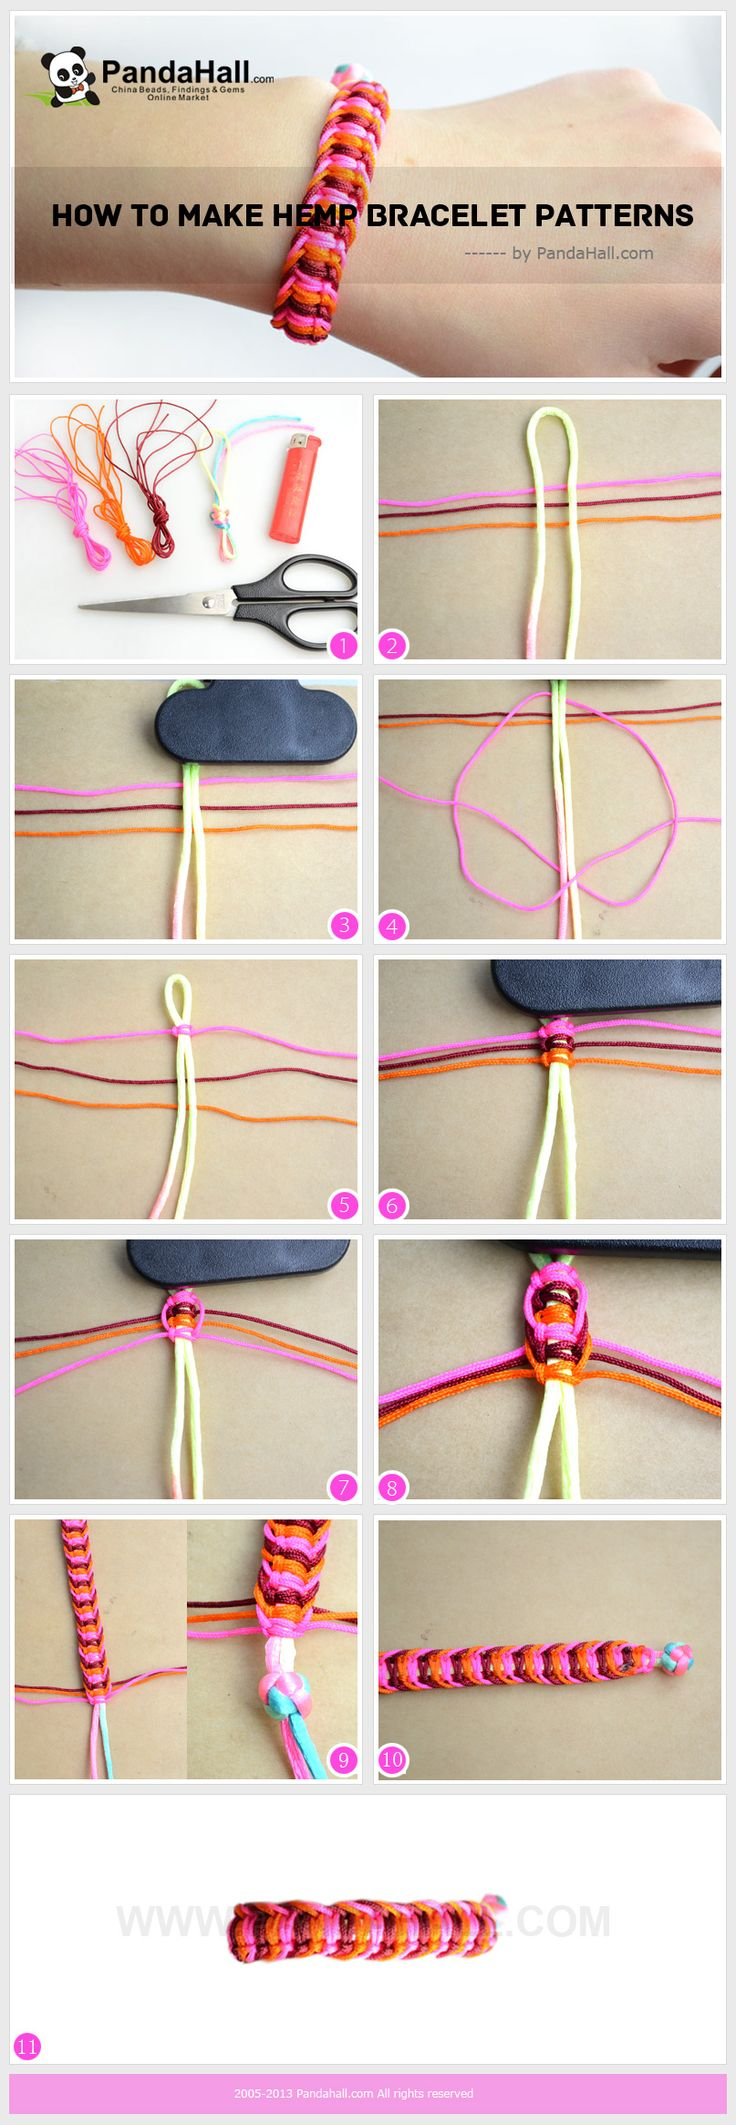 Three-color overlapped overhand knots - nice effect & a little bit different.  Detailed instructions at this site.  #handmade #jewelry #knotting #macrame